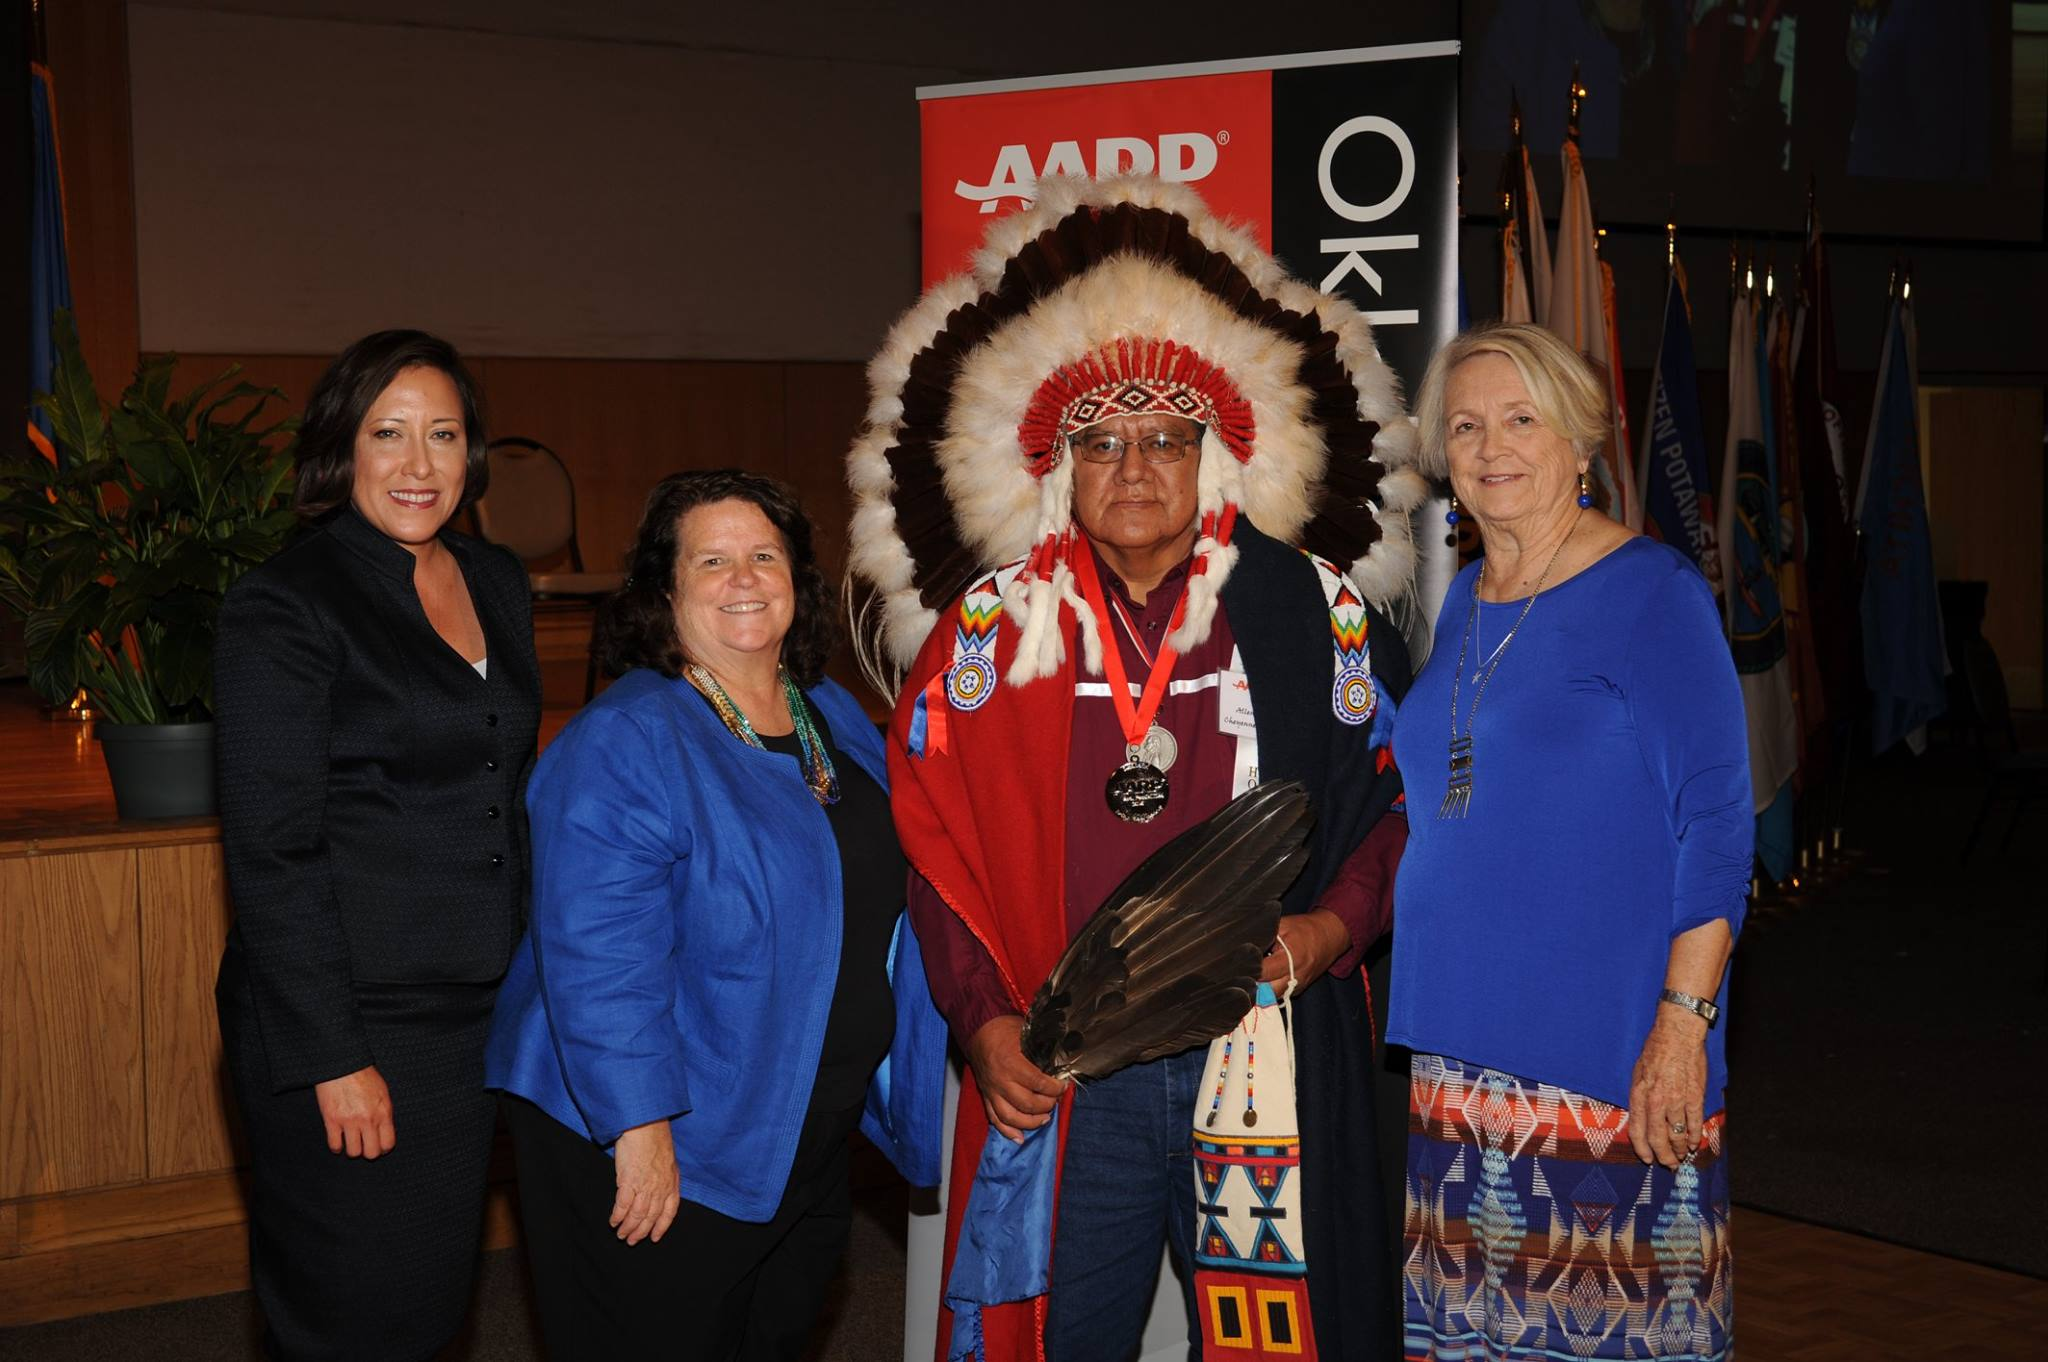 Oklahoma AARP honors dozens of Indian elders at ceremony